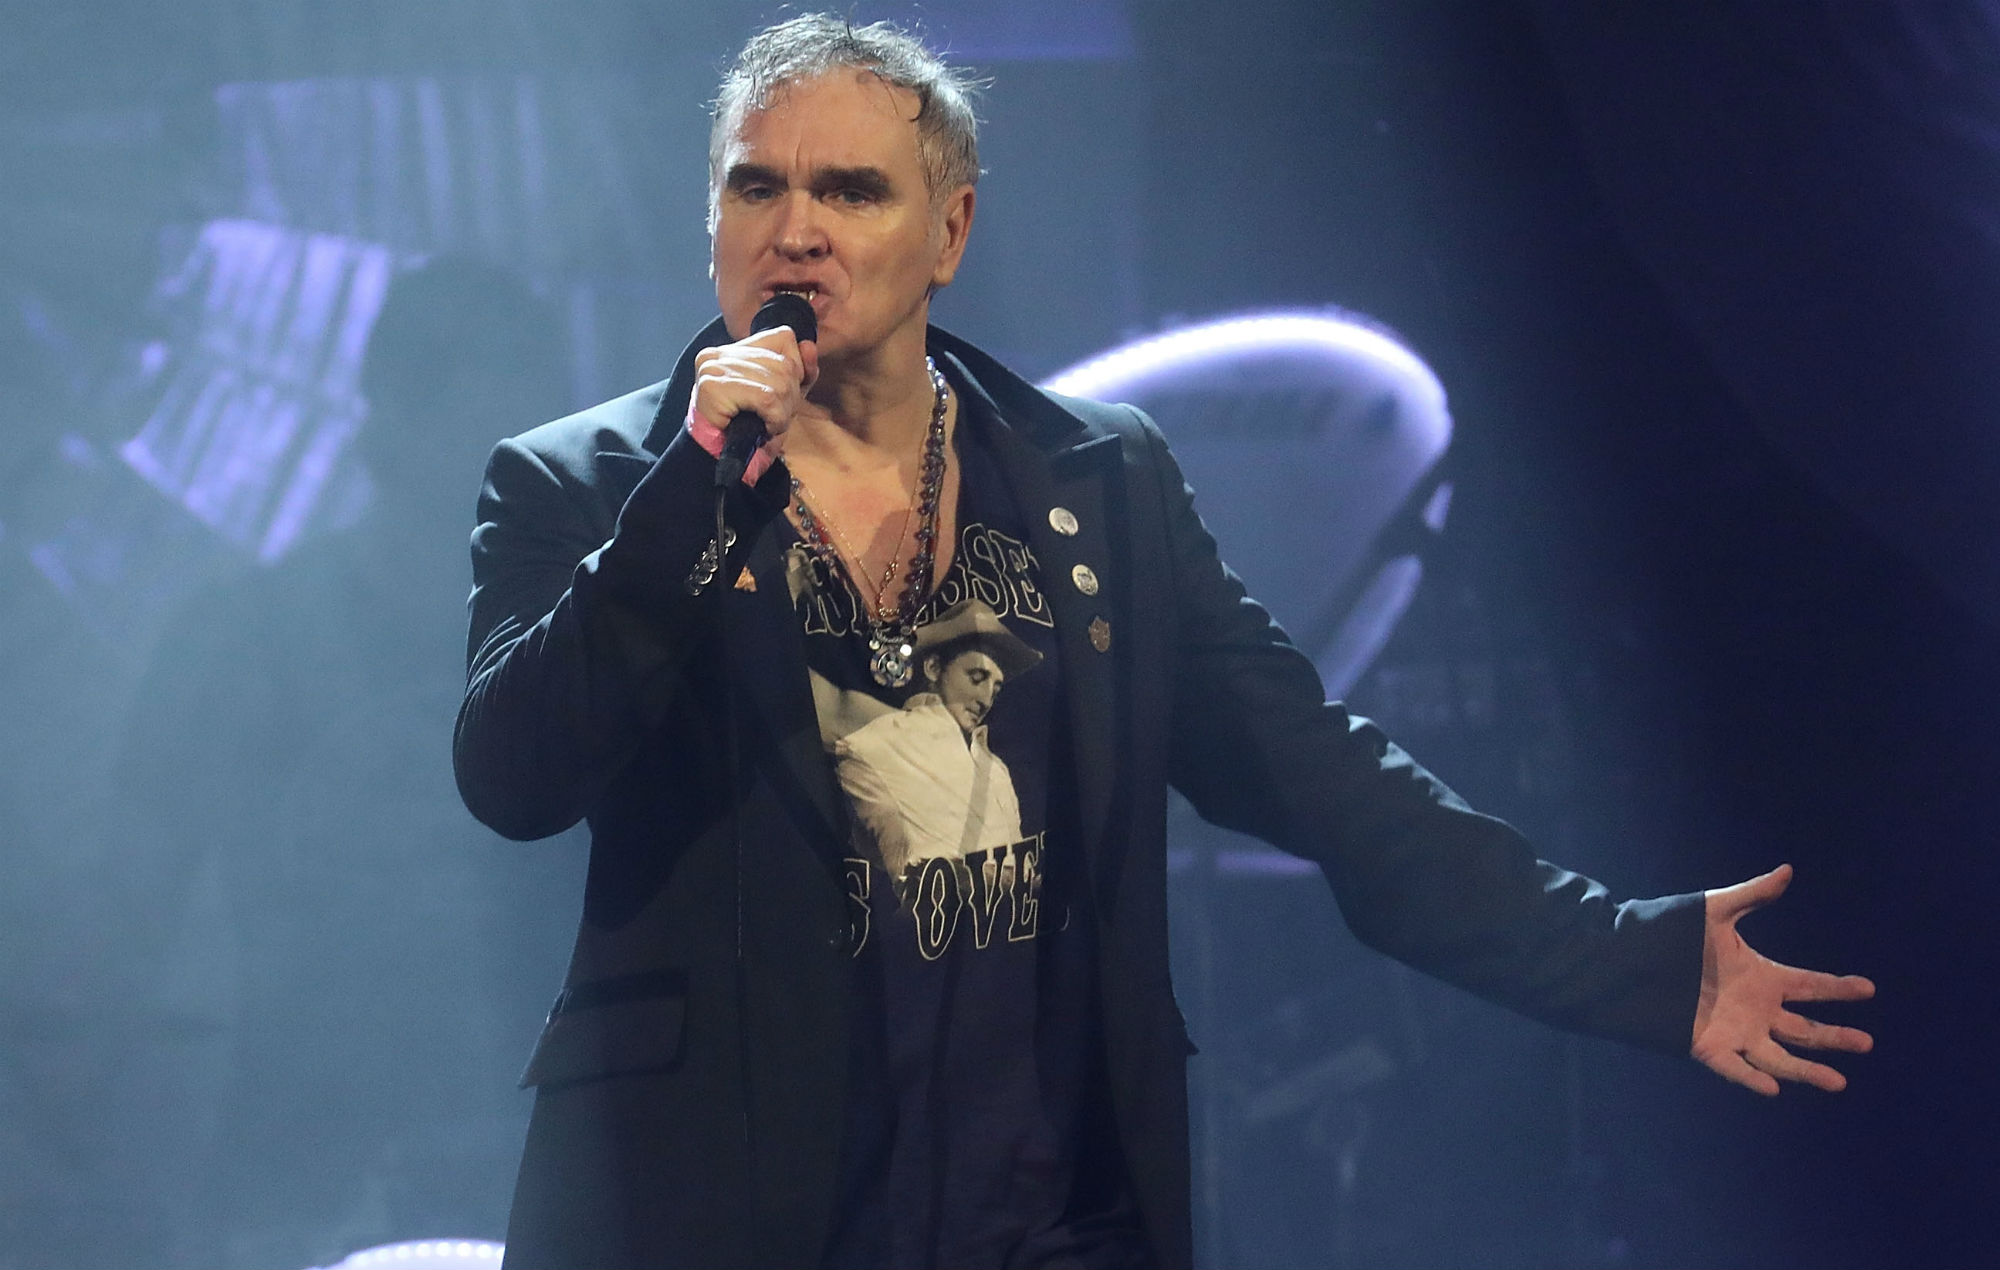 """Rescheduled: Morrissey Taking Sin City By Storm With Five-night Residency """"Morrissey: Viva Moz Vegas"""" At The Colosseum at Caesars Palace"""